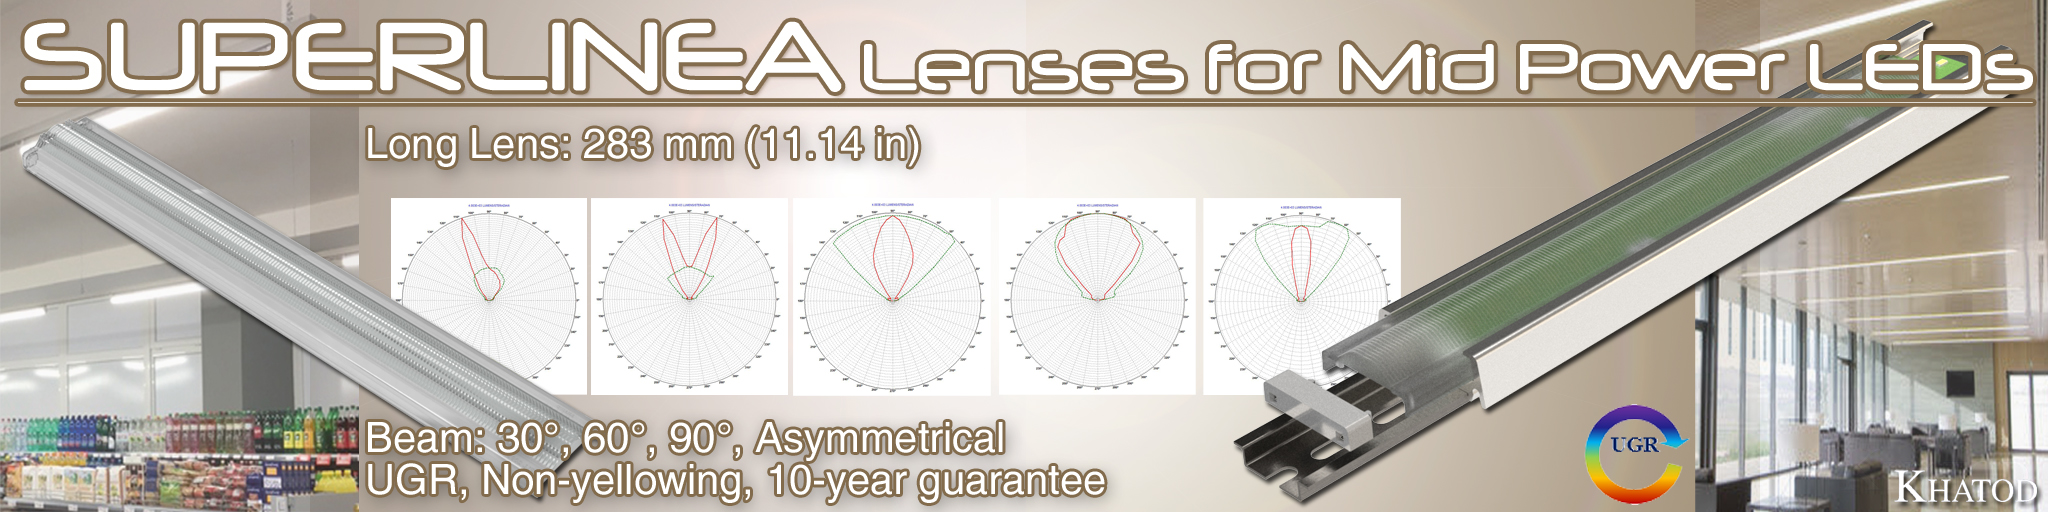 SUPERLINEA Lenses für Mid Power LEDs